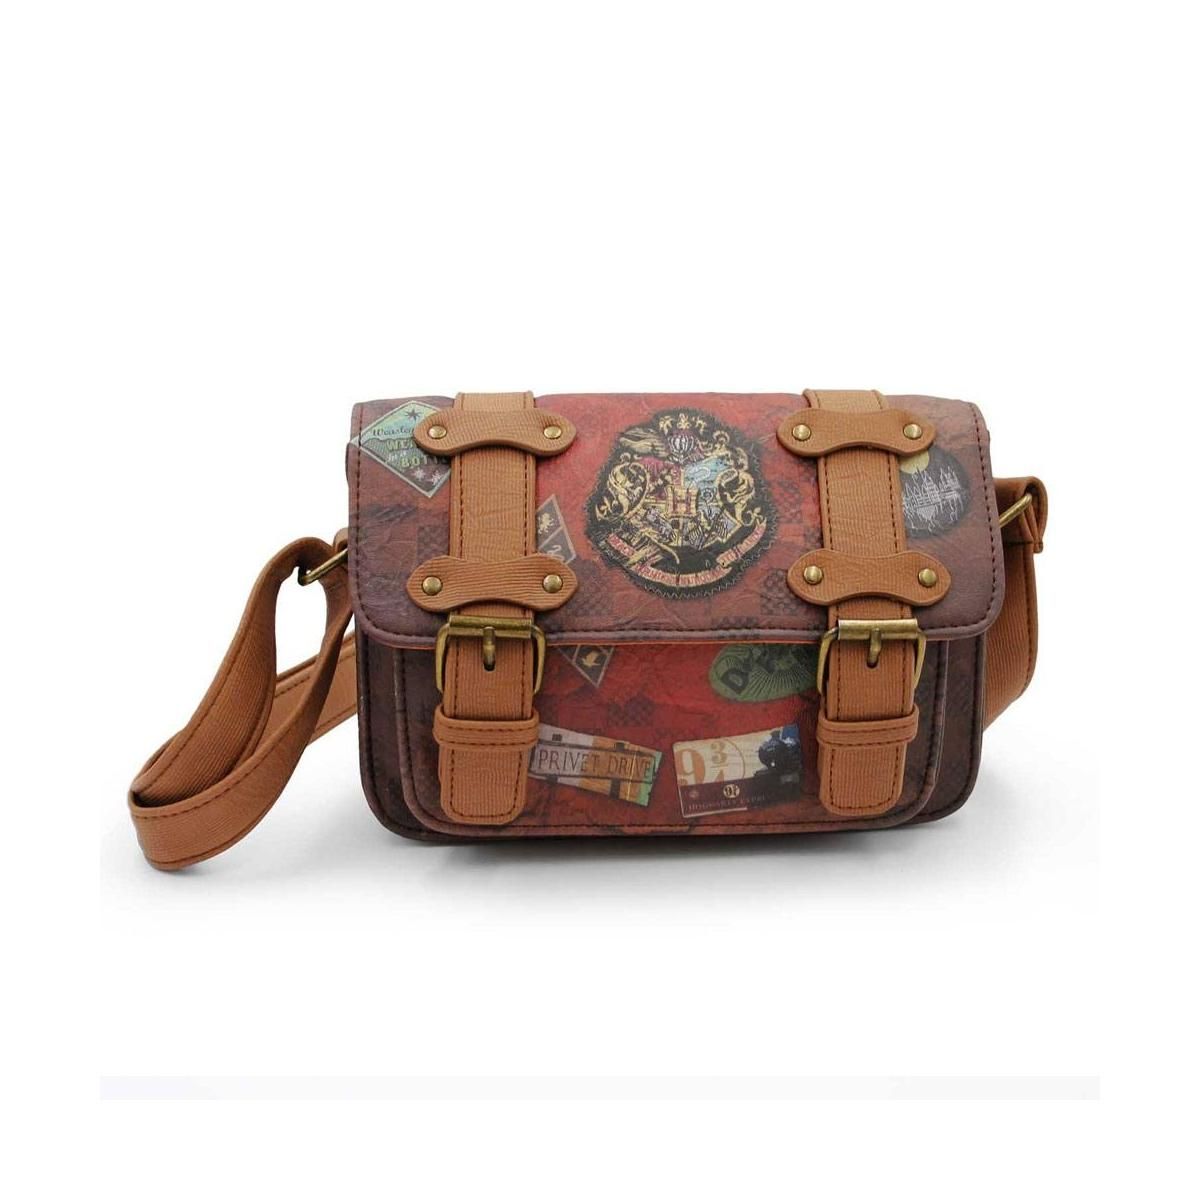 Sac a bandouliere harry potter